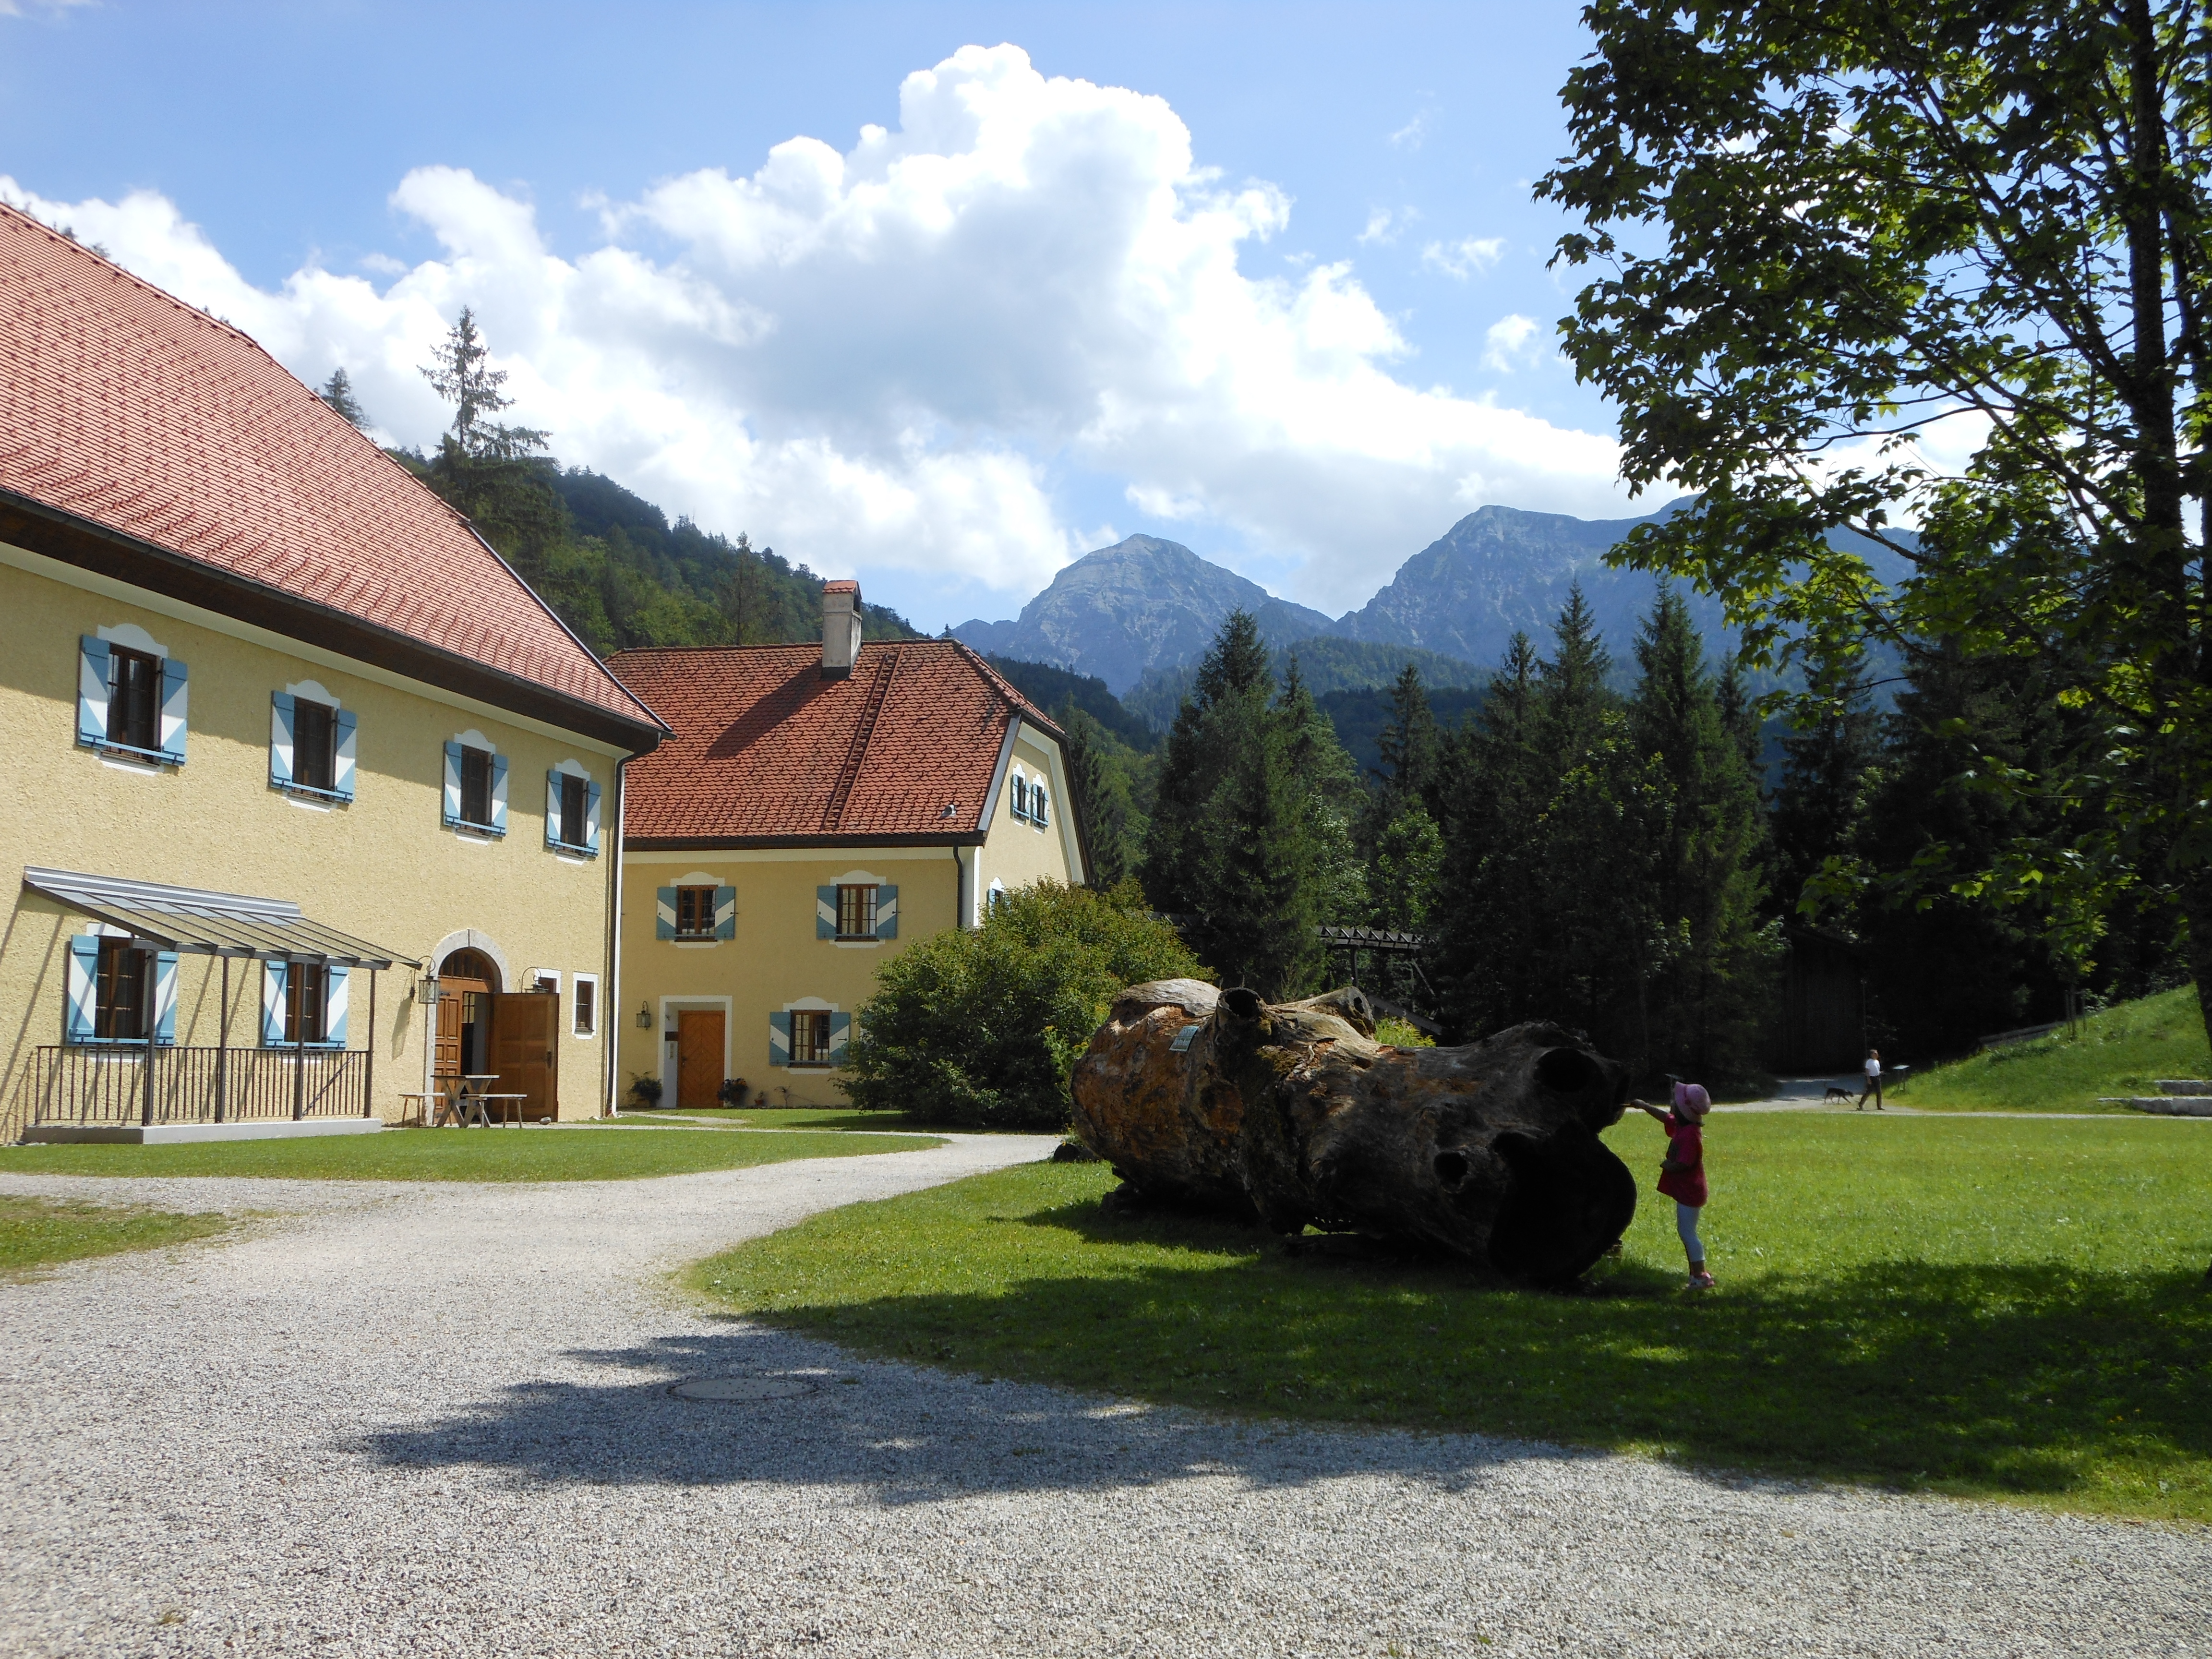 New Paths for Woodcutter Museum in Ruhpolding